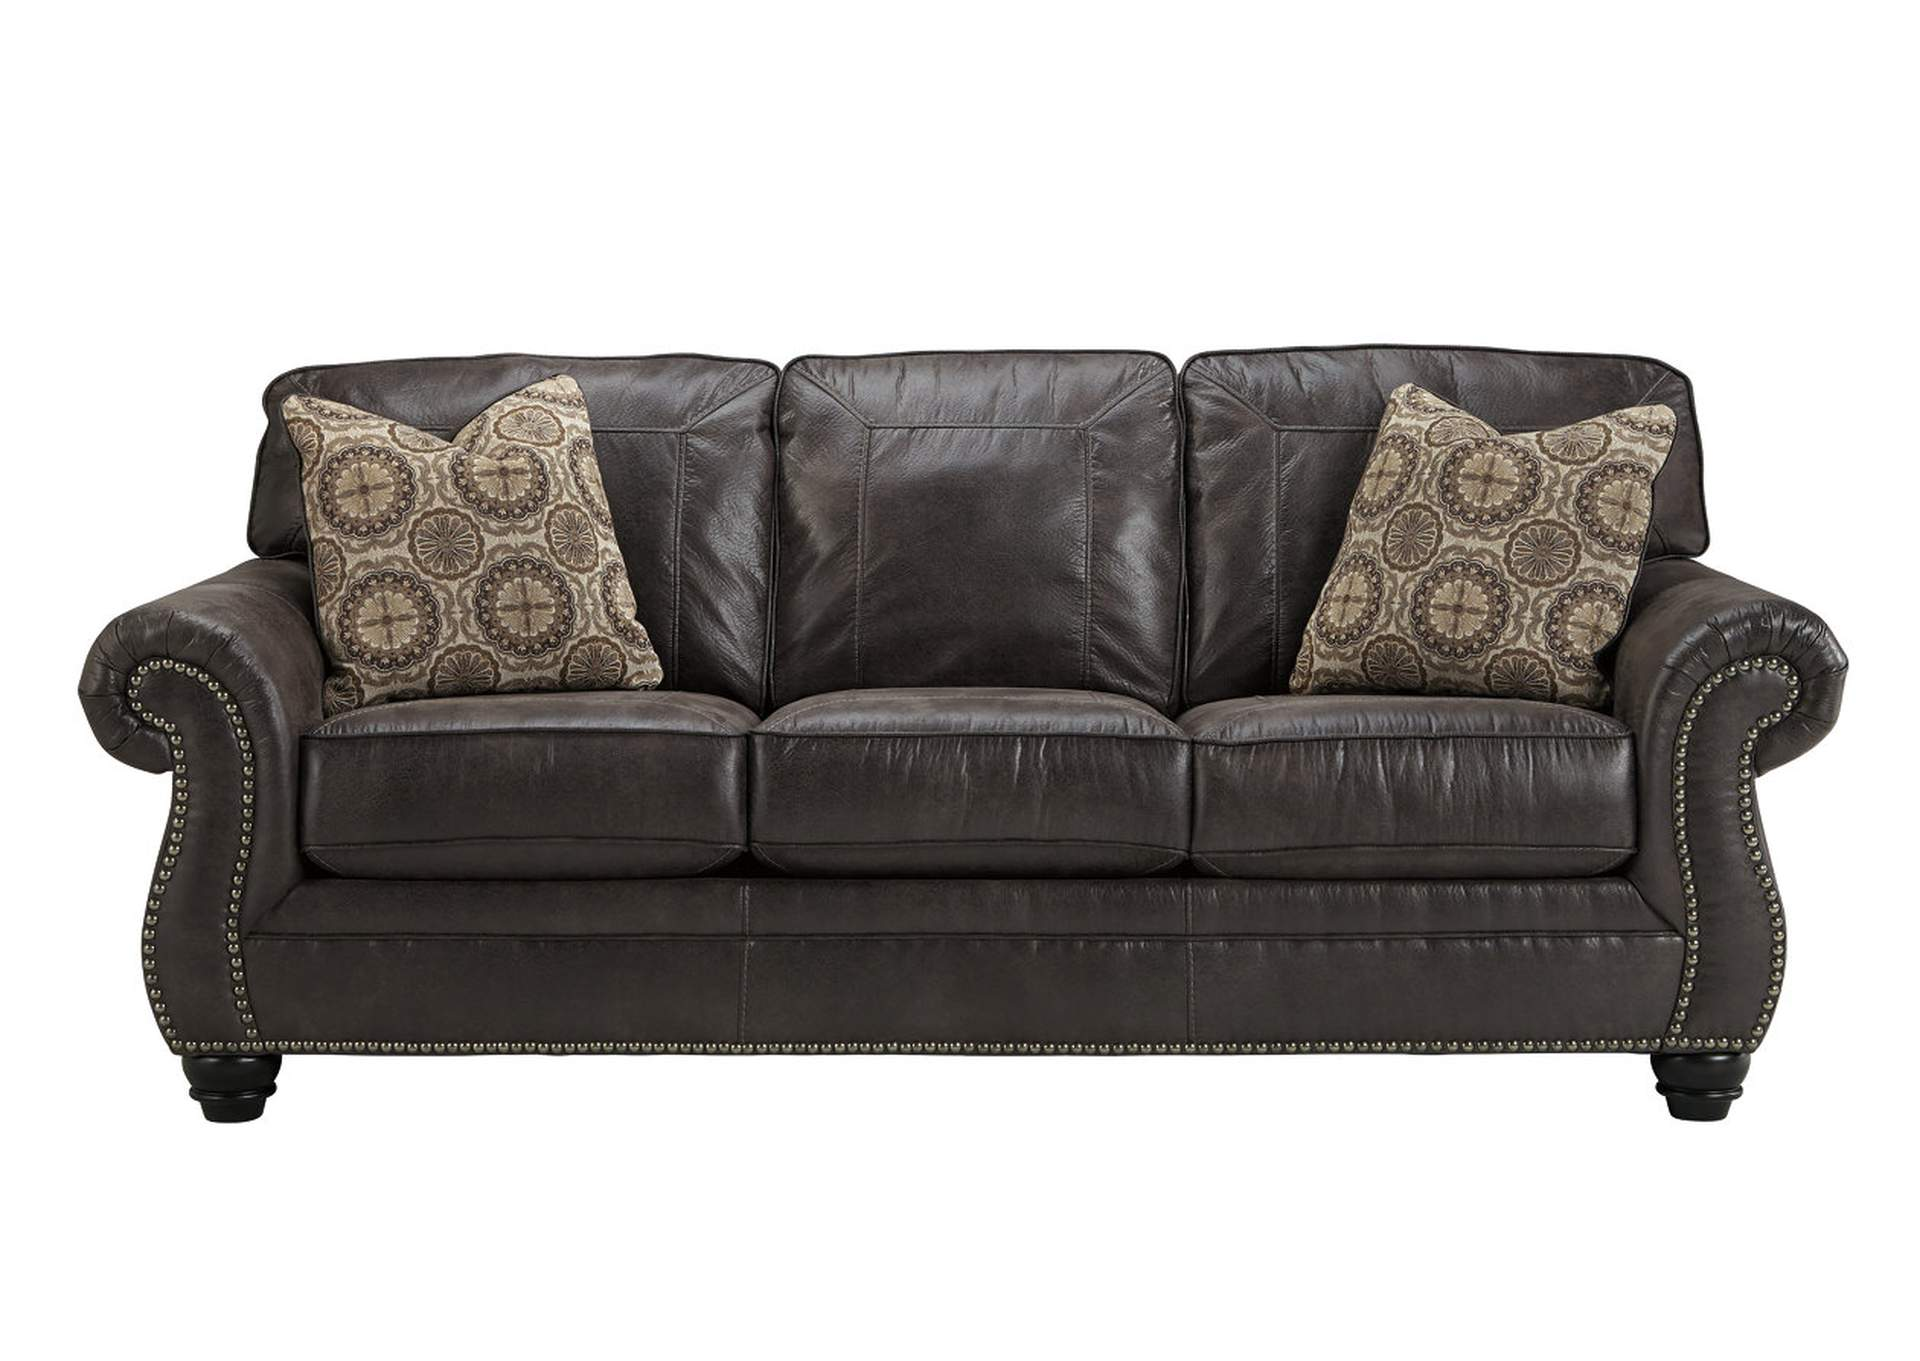 Breville Charcoal Sofa Benchcraft. Lifestyle Furniture Home Store Breville Charcoal Sofa